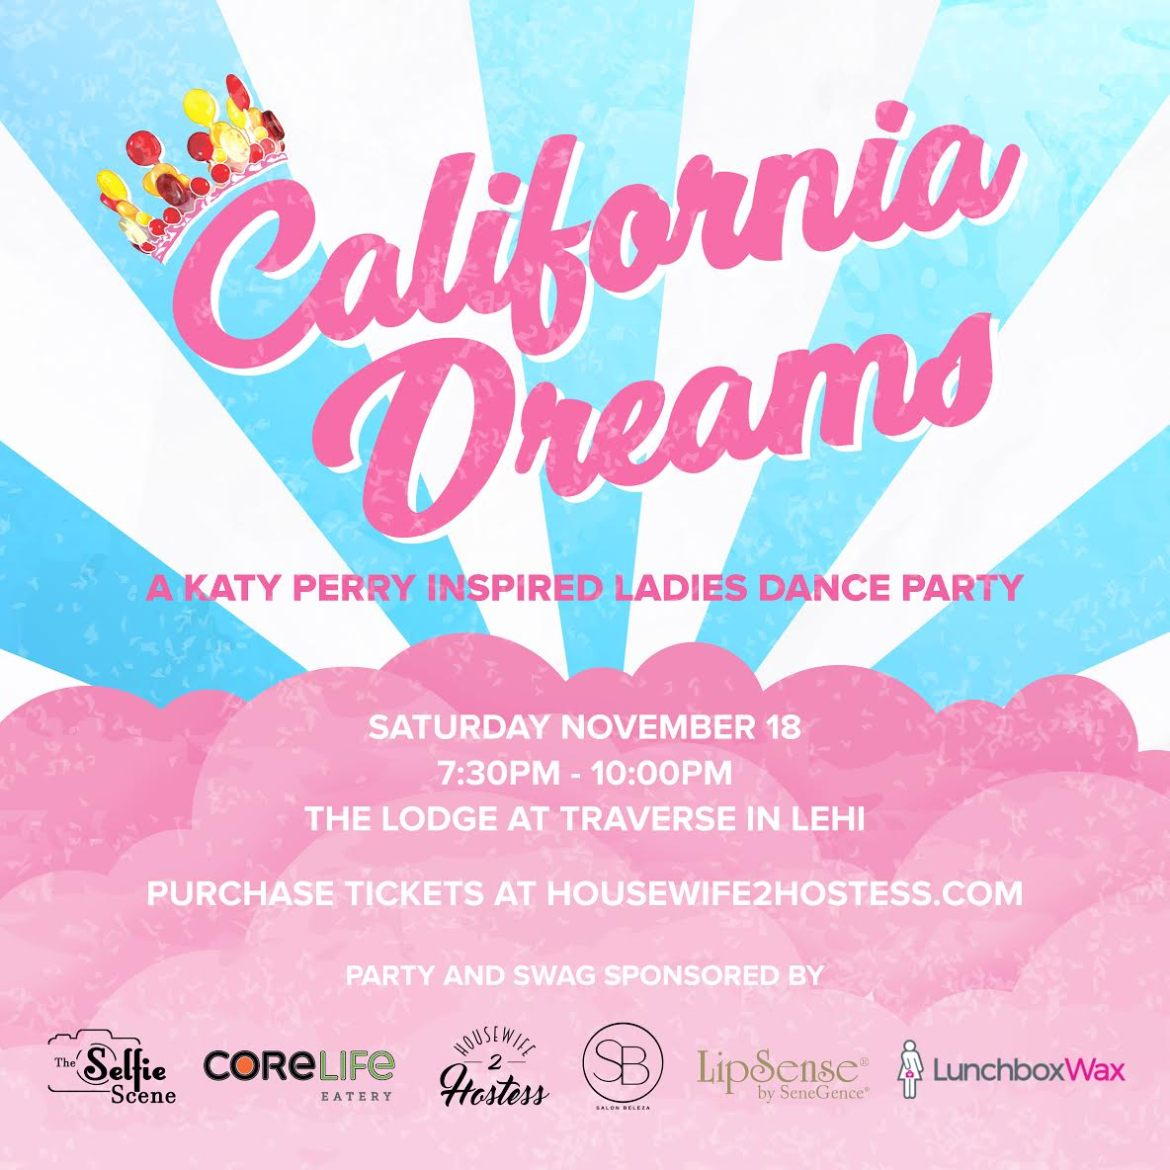 California Dreams Dance Party